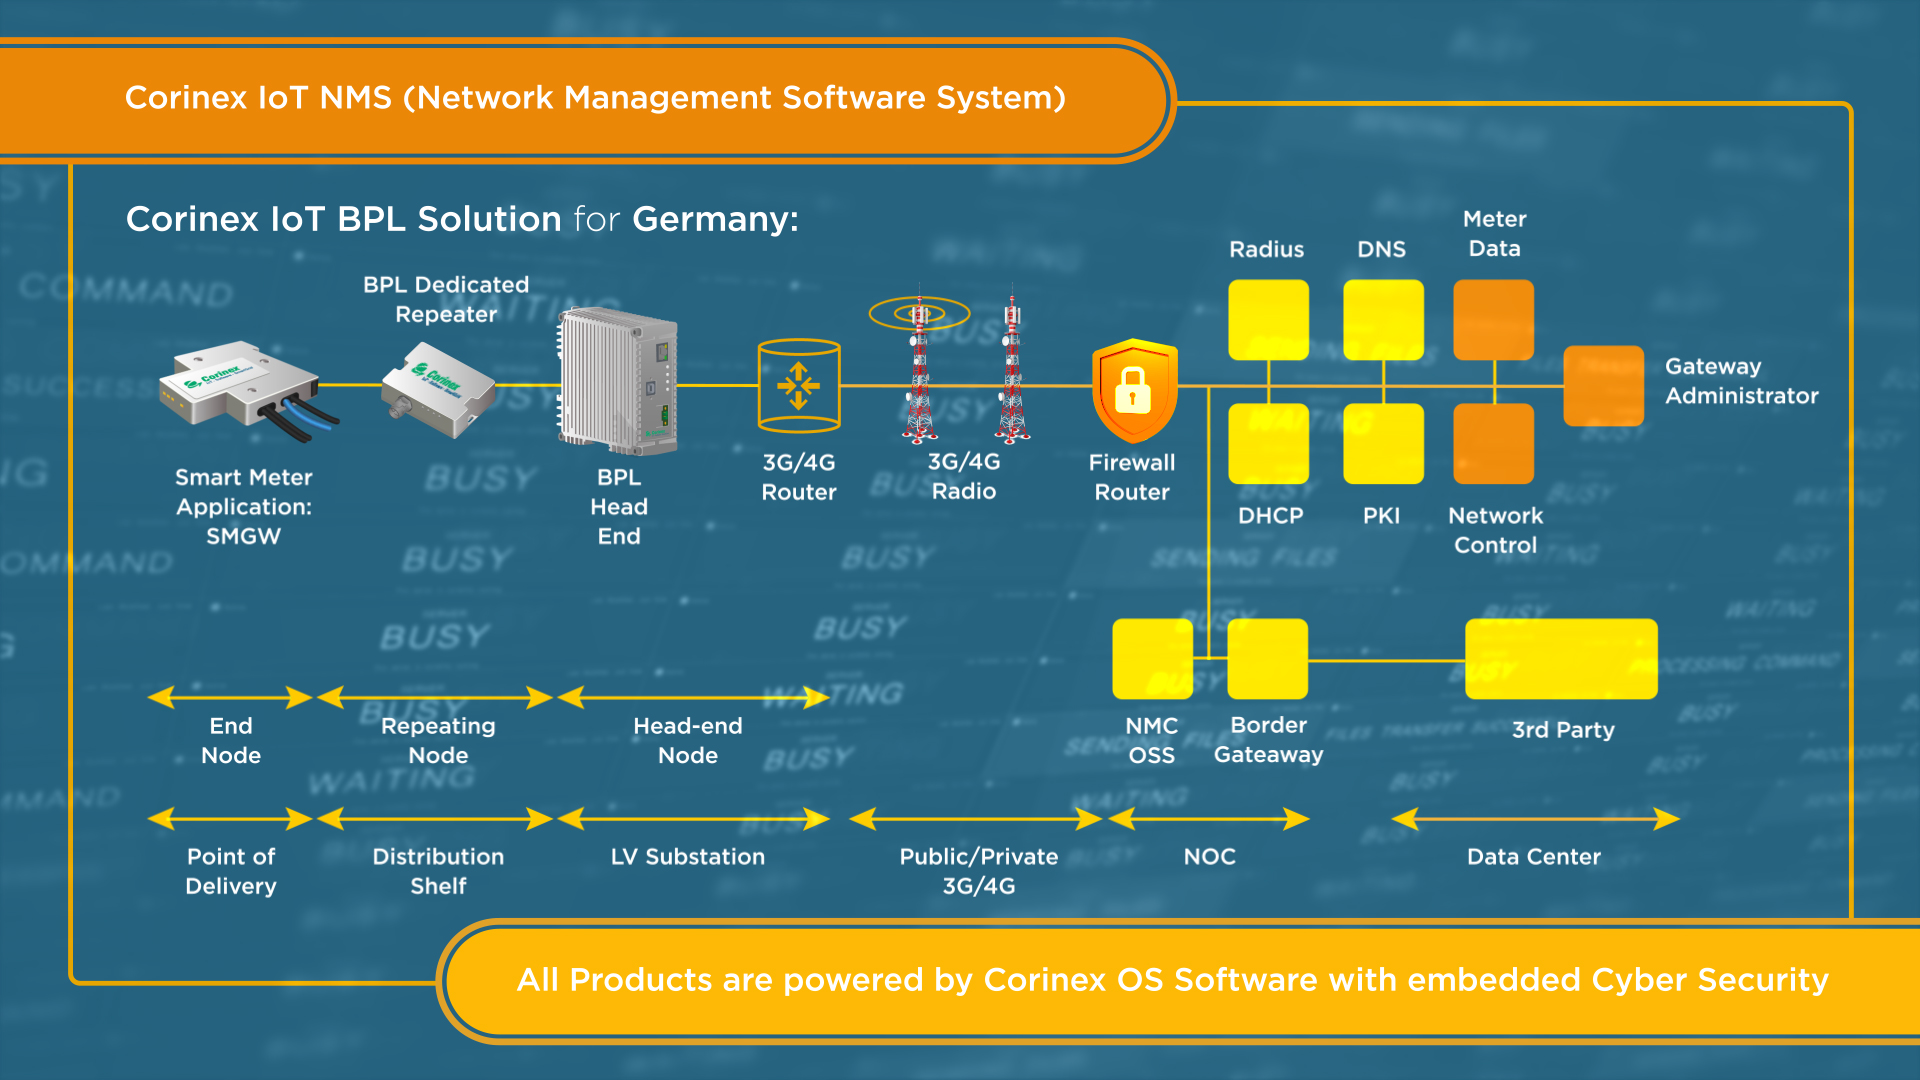 Corinex IoT BPL Solution for Germany